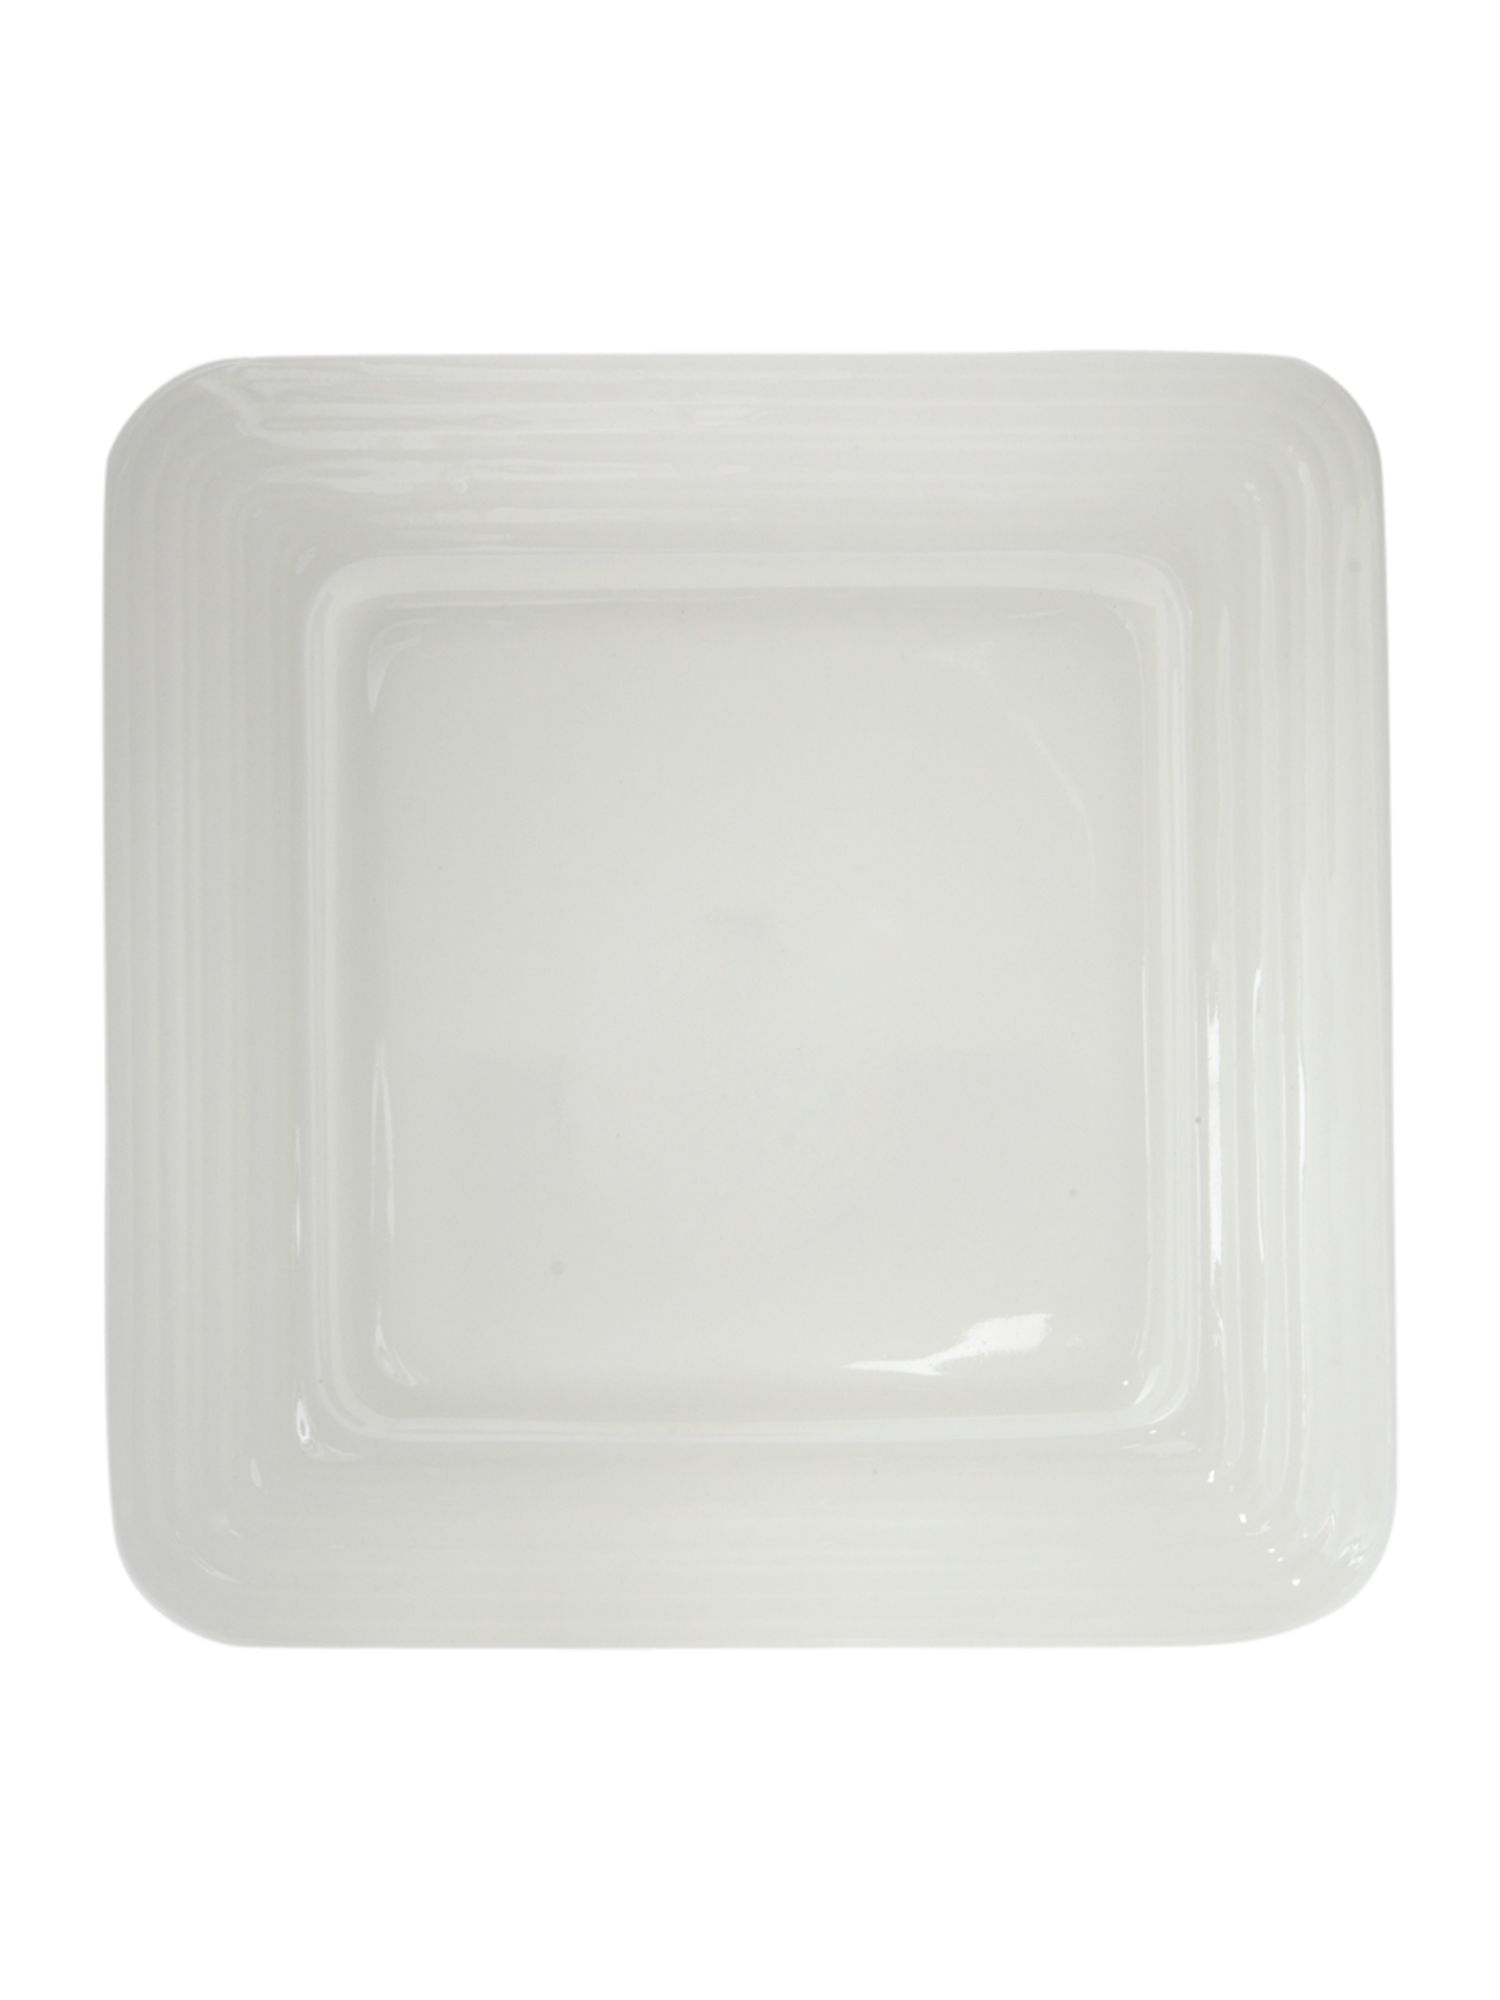 Soho square side plate